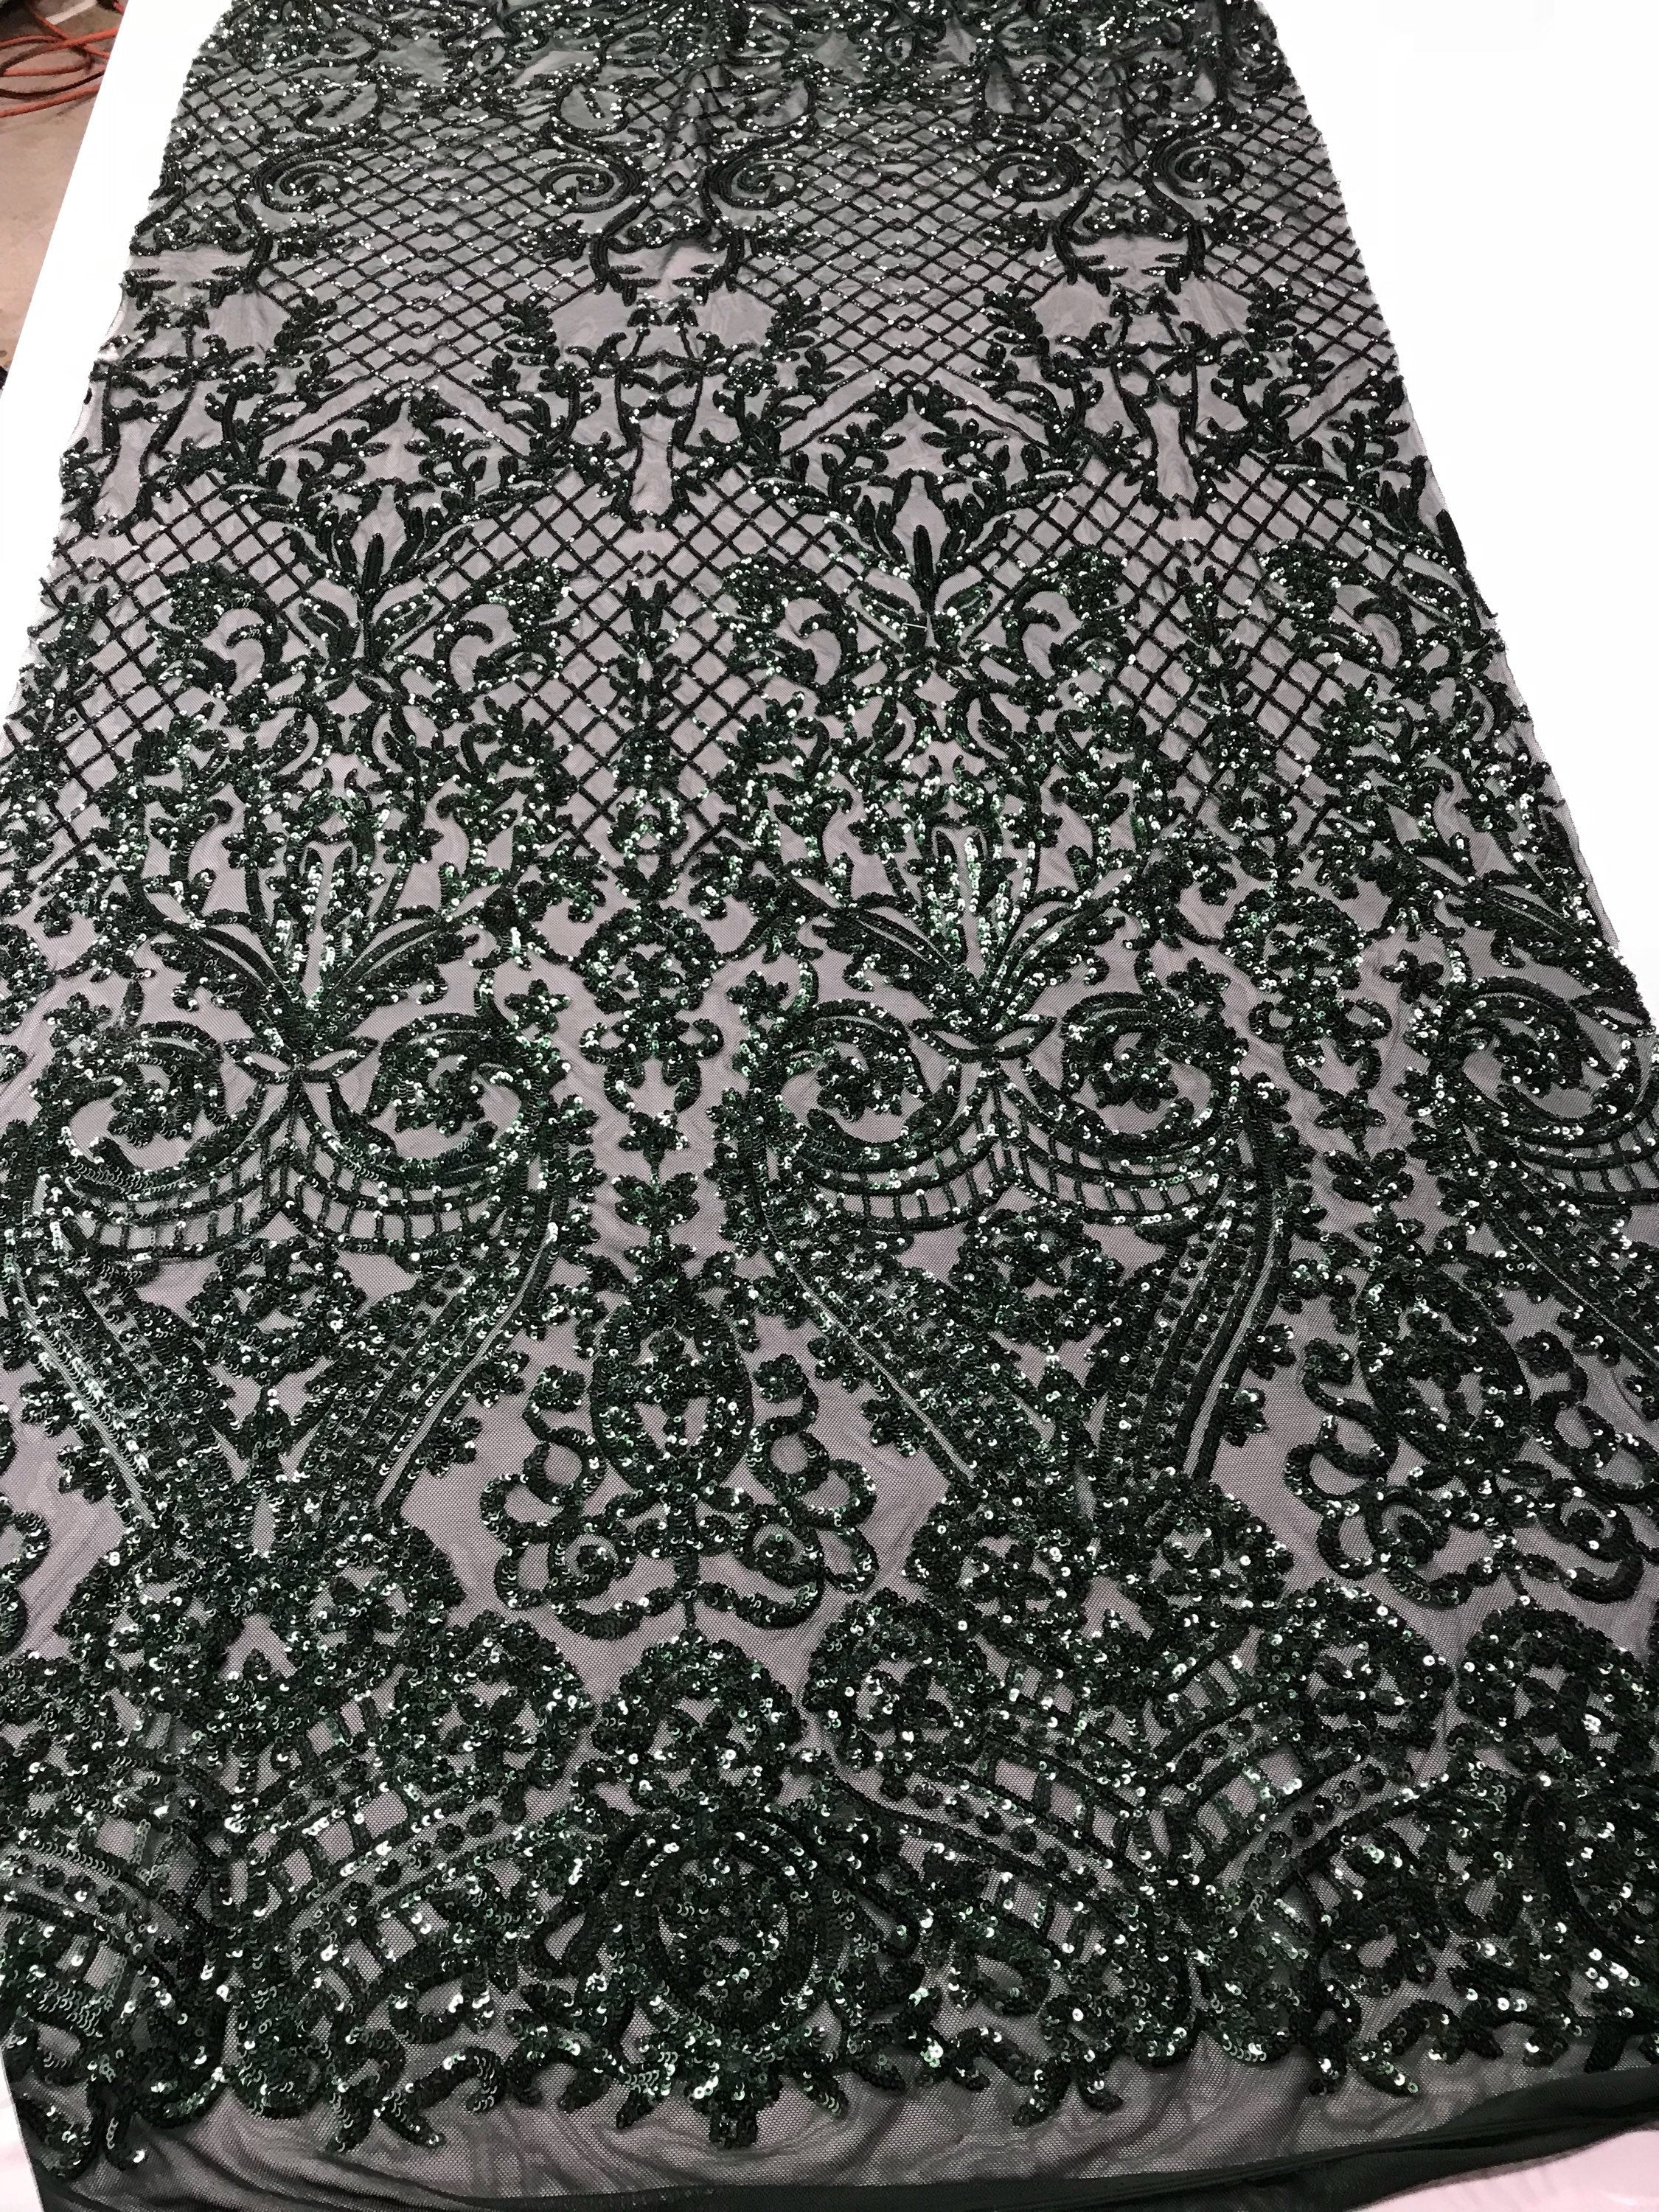 Concord 4 Way Stretch Fabric Sequins By The Yard - Hunter Green Embroidered Mesh Dress Top Fashion For Bridal Veil Wedding Lace Decoration - KINGDOM OF FABRICS